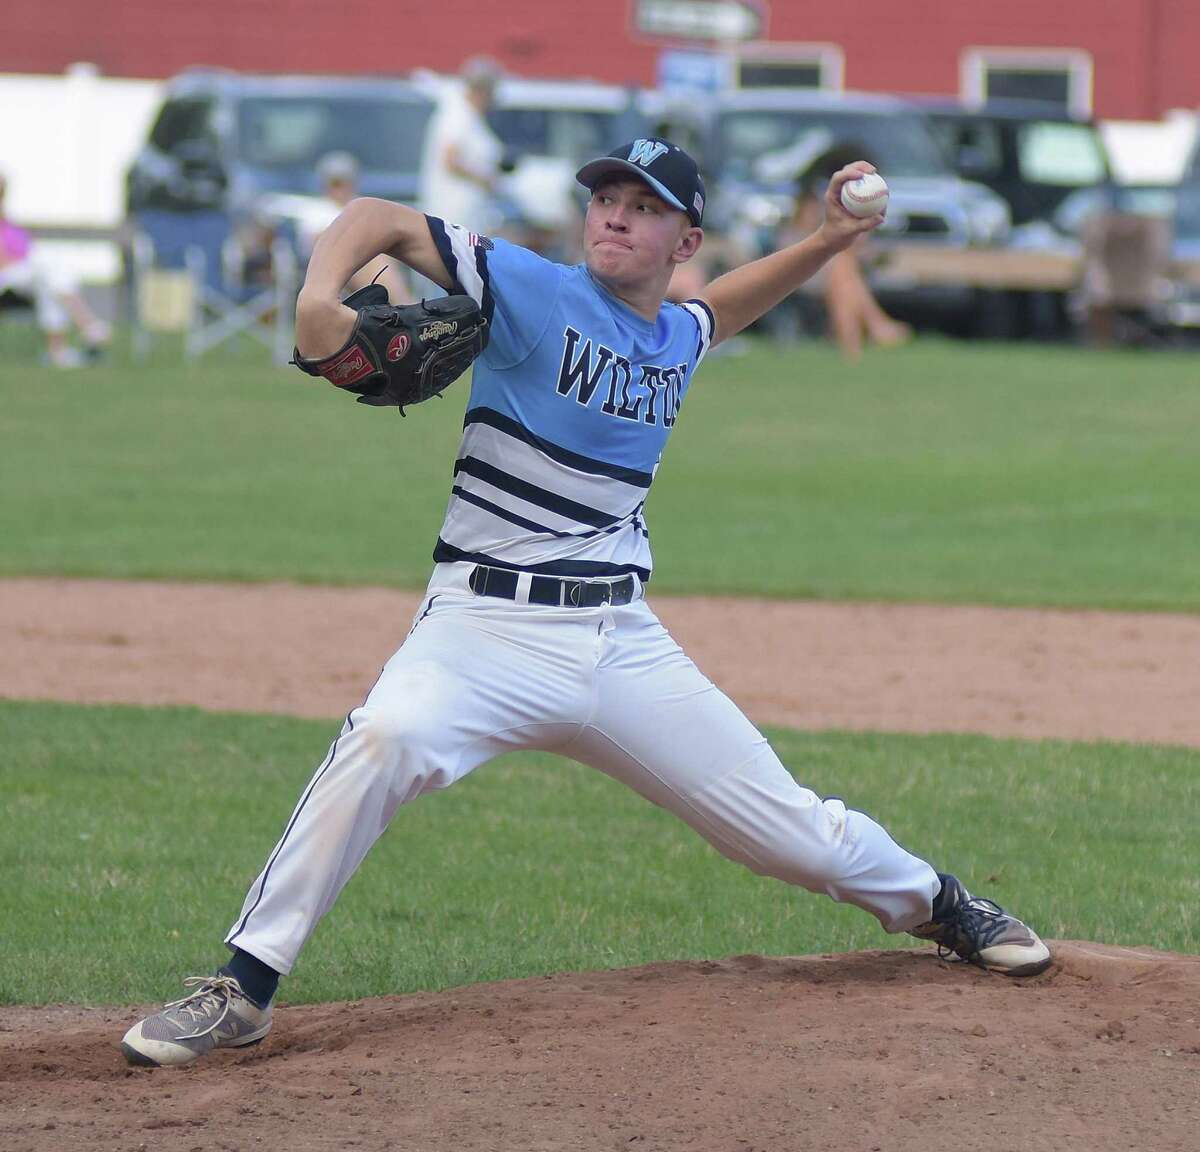 Wilton Post 86 pitcher Ryan Gabriele fires to the plate during an American Legion baseball state tournament game against Waterbury Post 1 at Wilton High School.